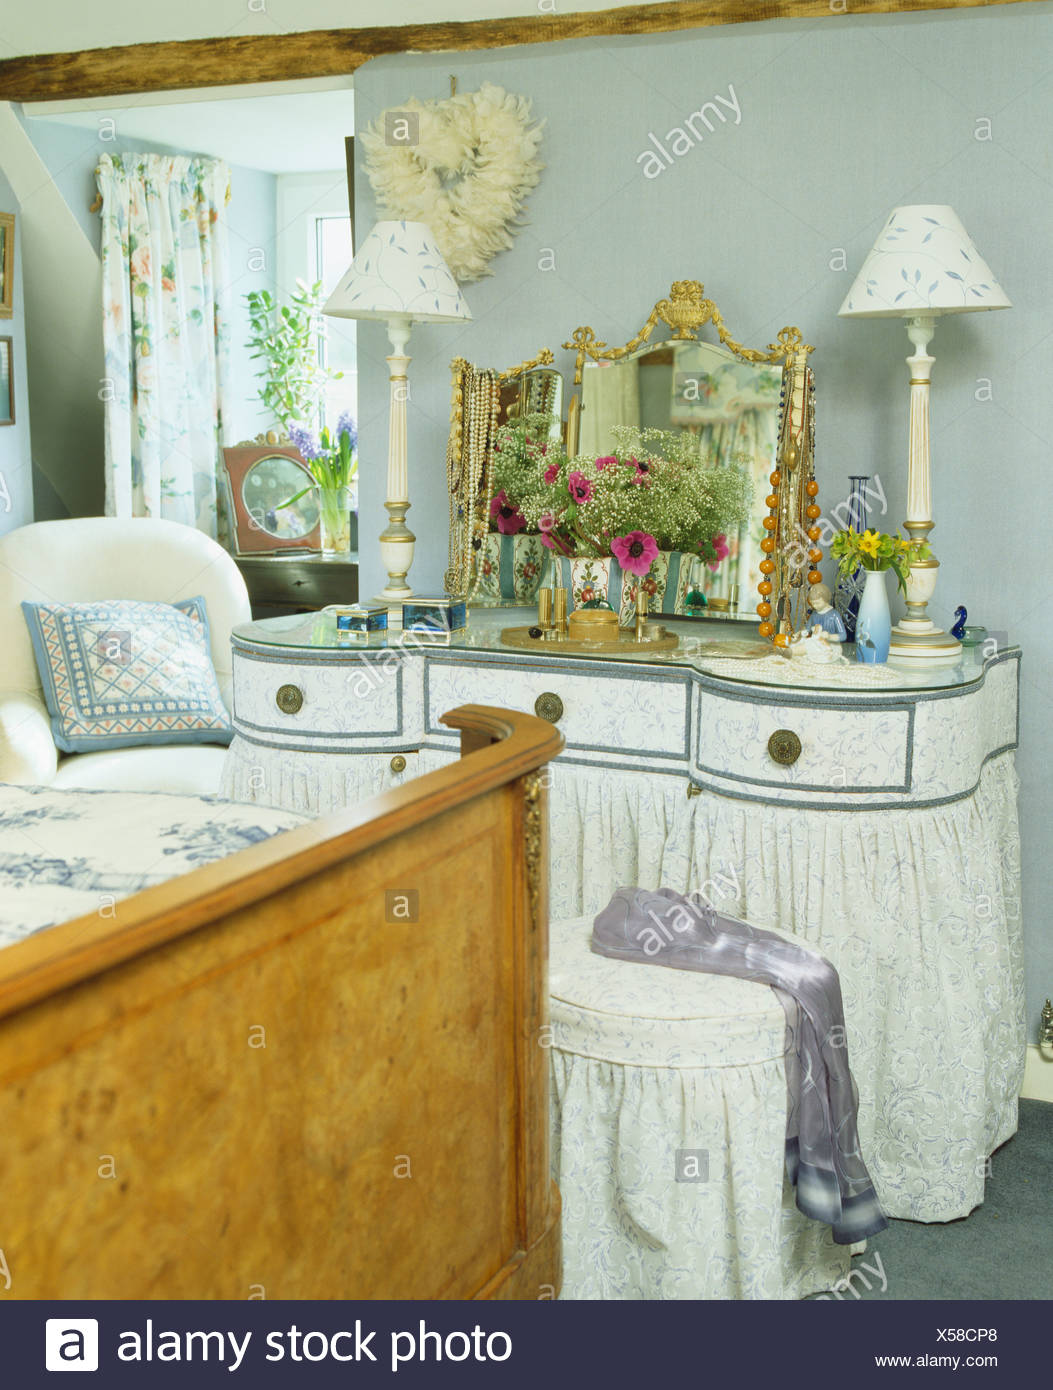 Picture of: Blue Gray Cottage Bedroom With White Lamps On Dressing Table With Skirted Bernard Thorpe Drapes And Antique Mirror Stock Photo Alamy